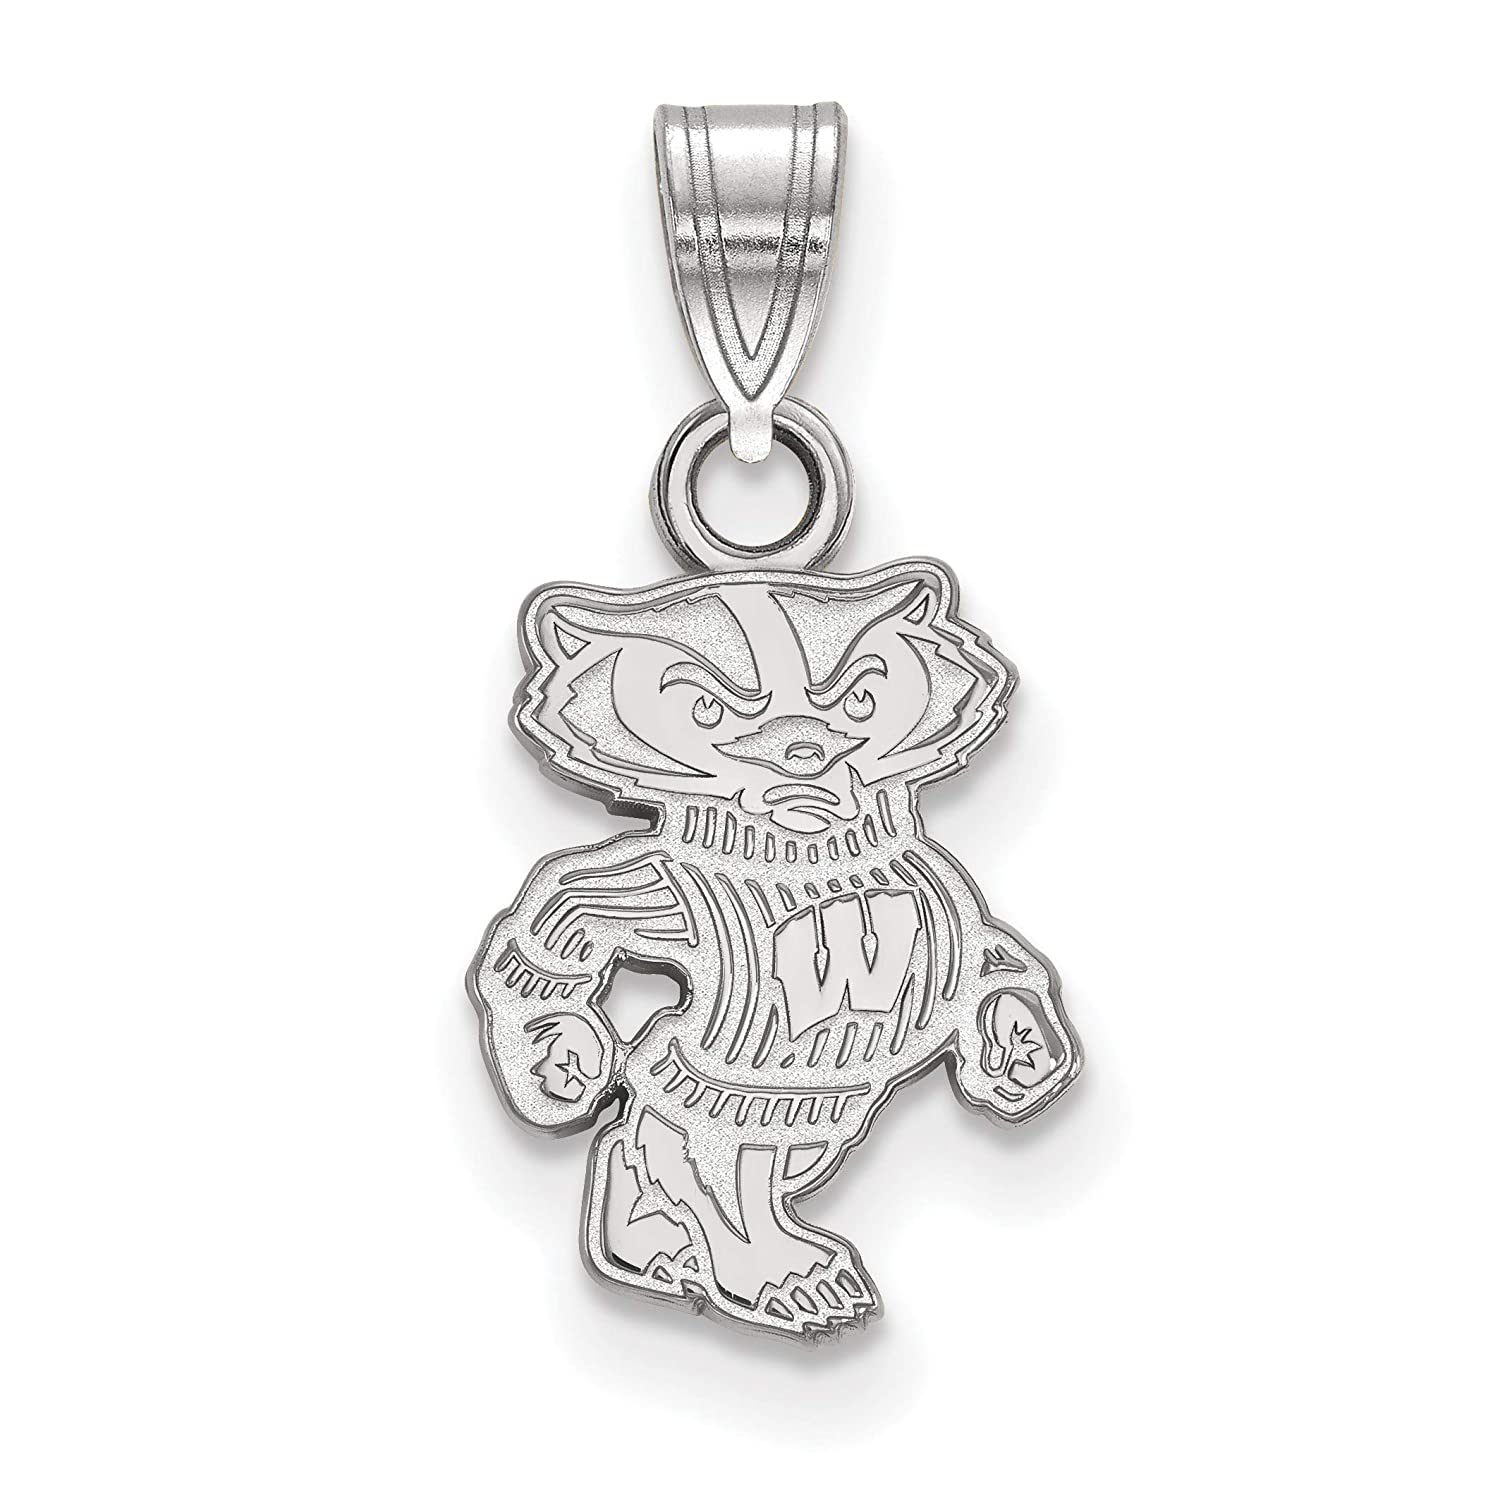 University of Wisconsin Badgers Bucky Mascot Pendant in Sterling Silver 15x10mm